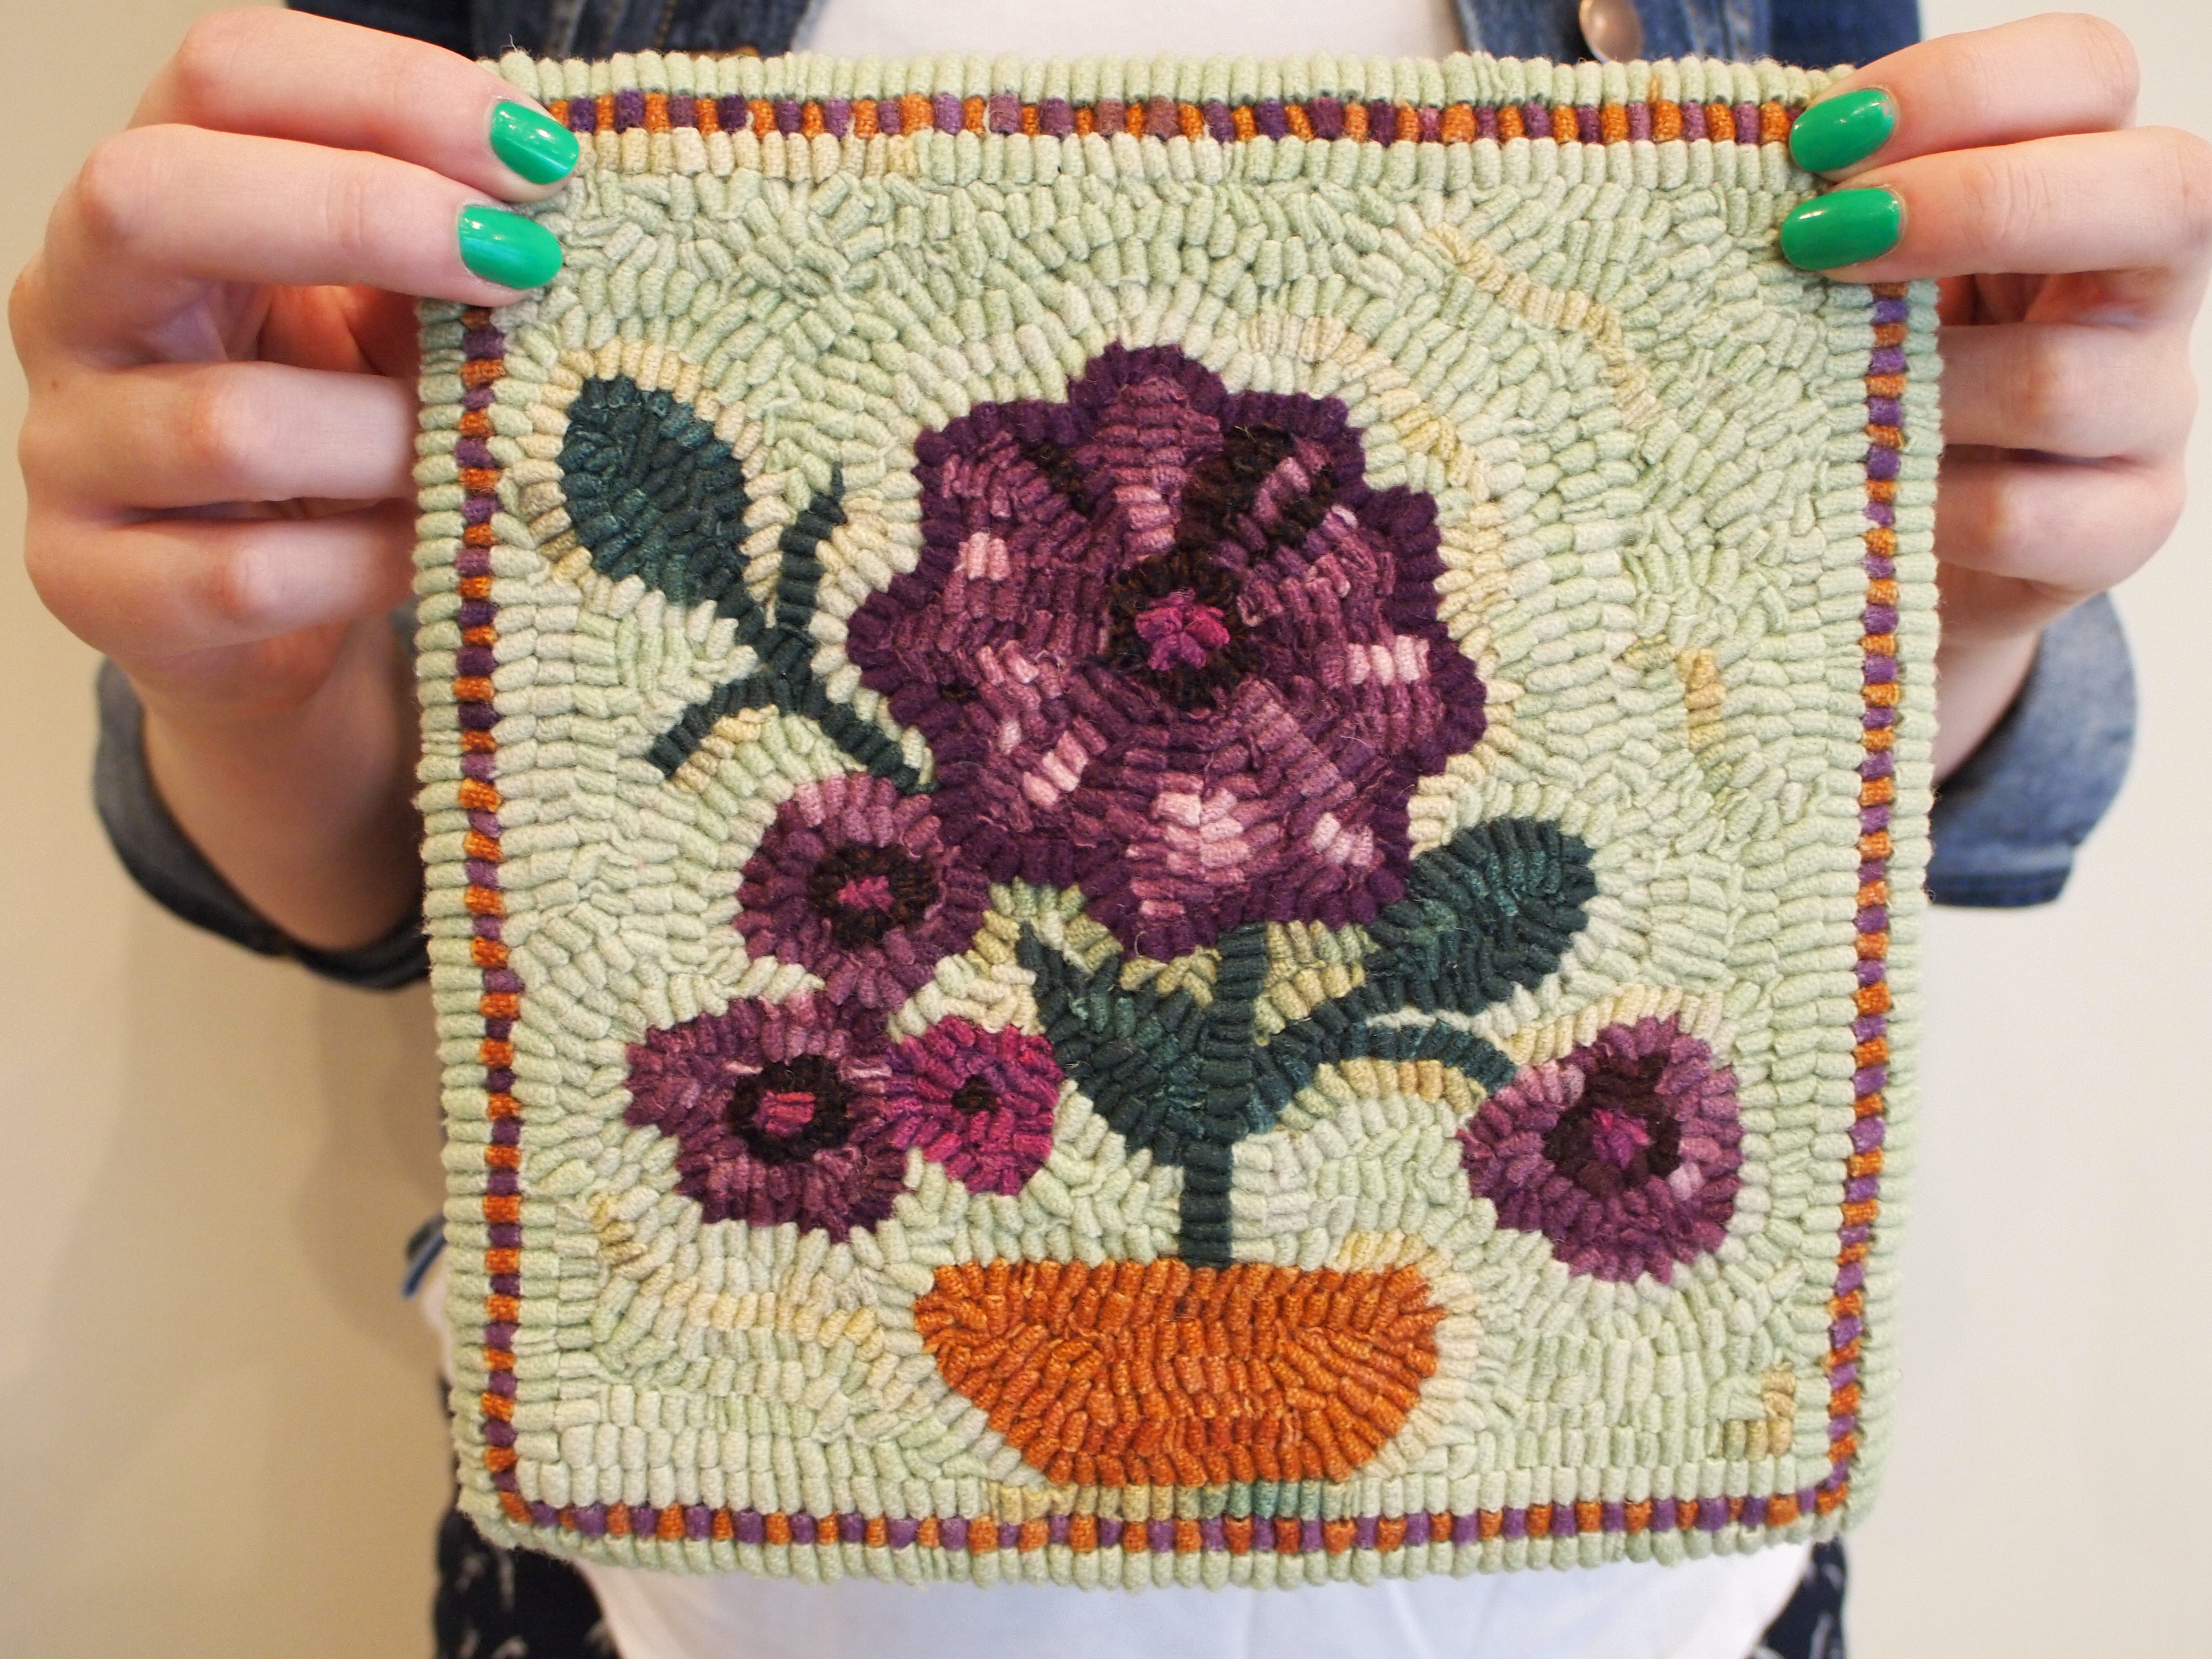 A pair of hands with bright green fingernails holds up a rug hooking piece depicting purple flowers with a light-coloured background